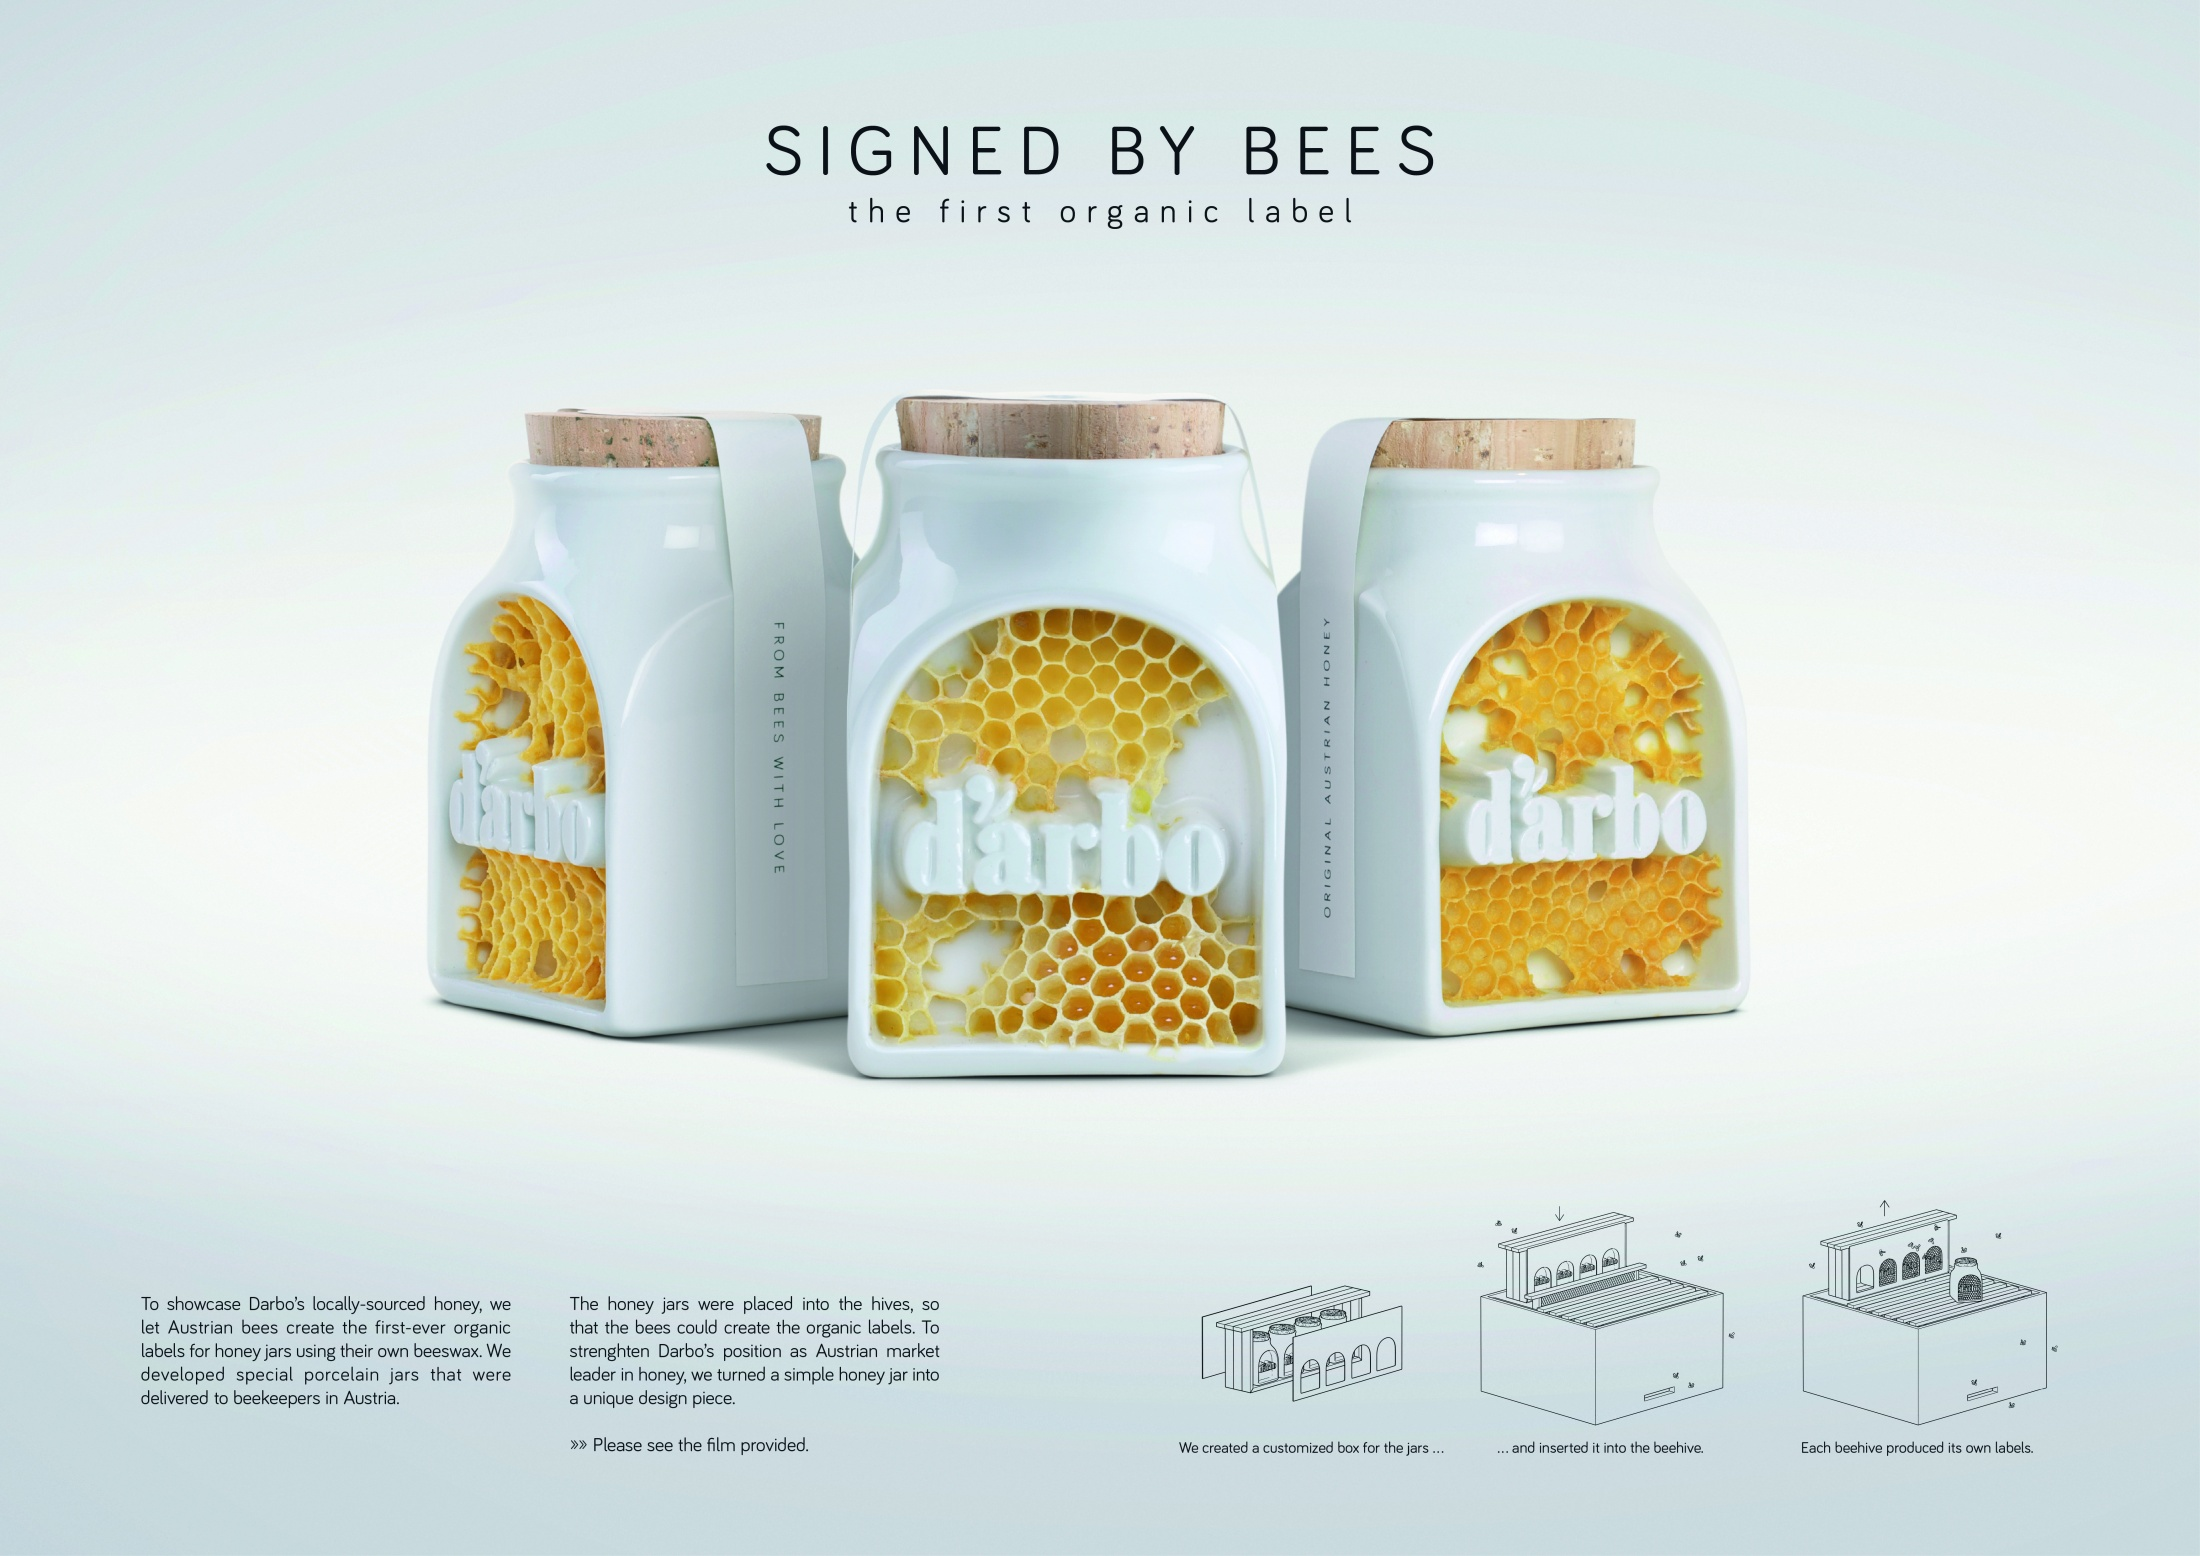 Thumbnail for Signed by bees